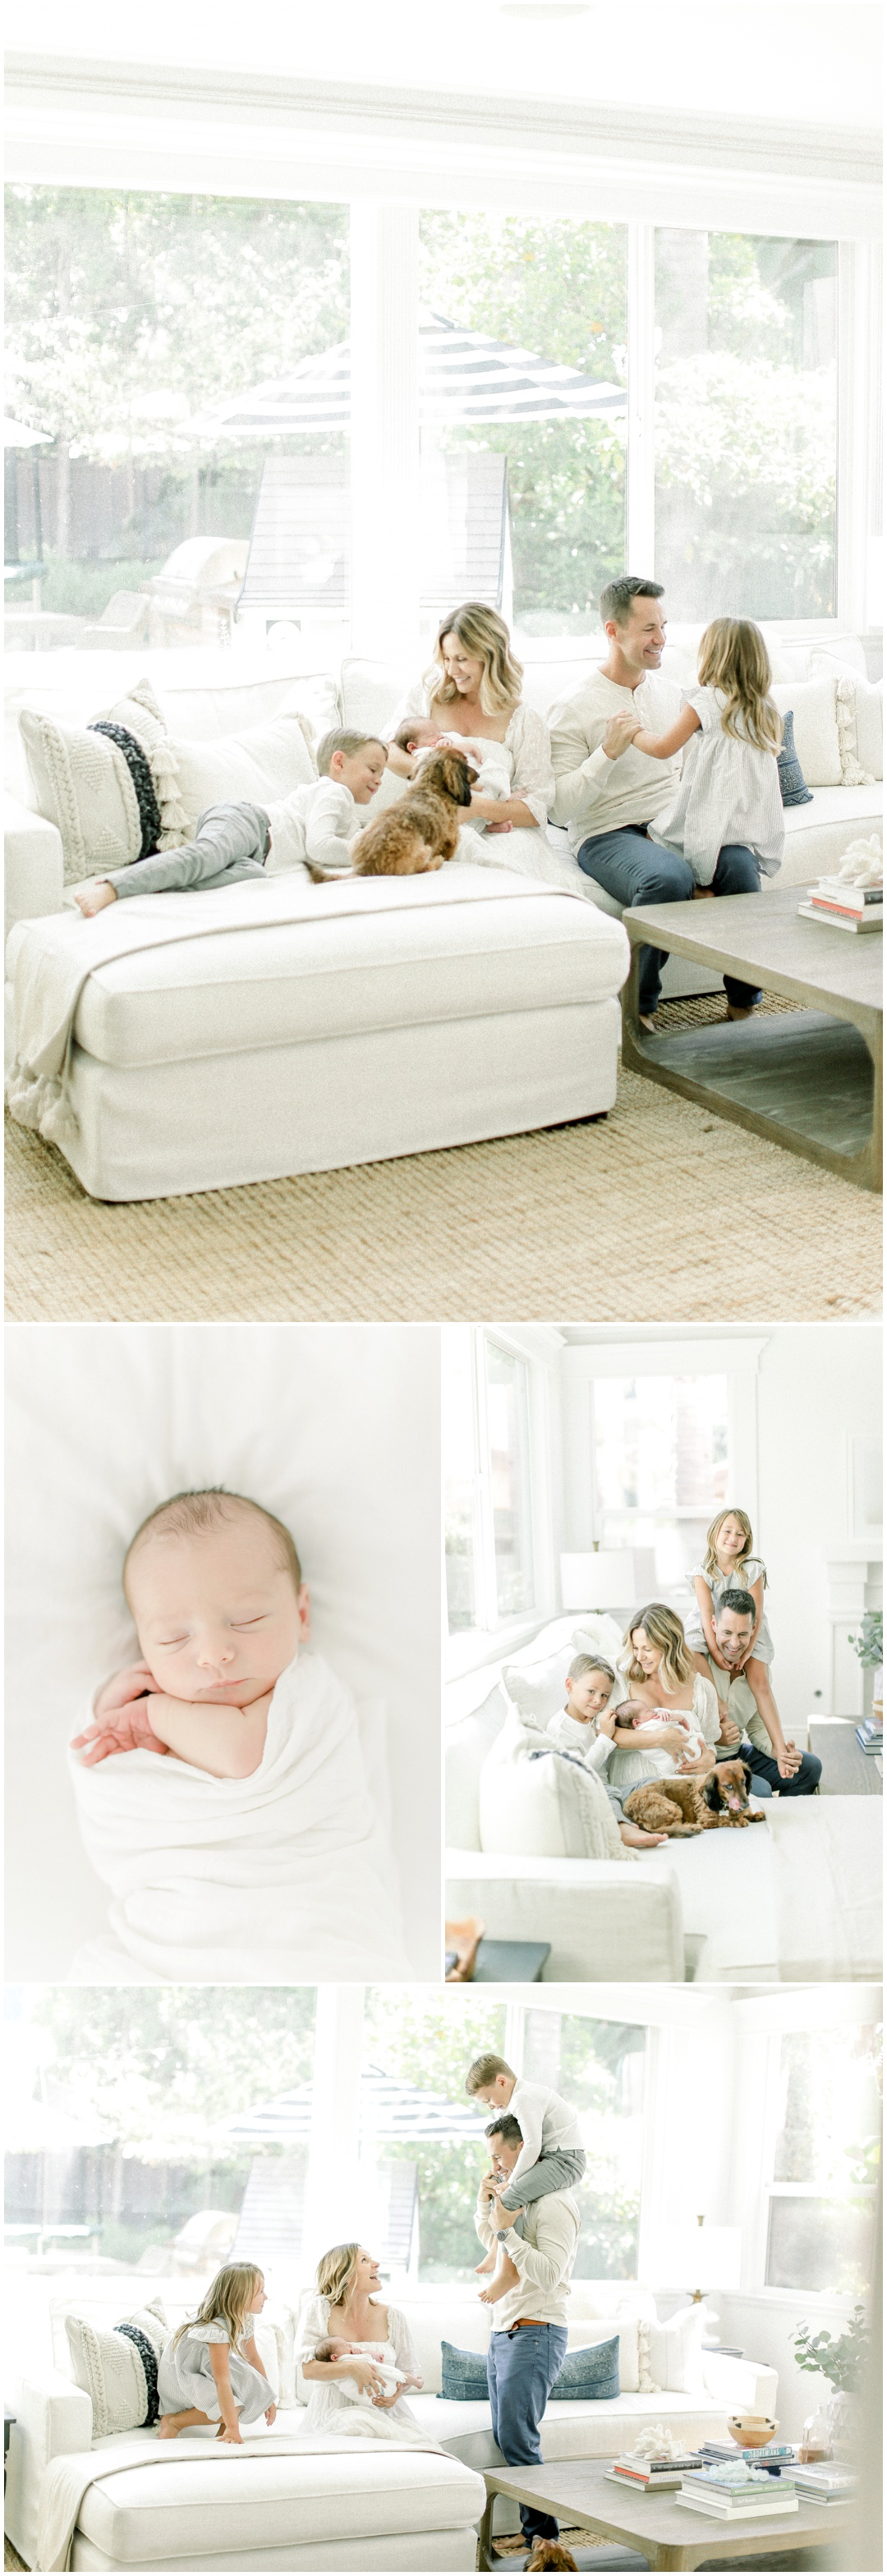 Newport+Beach+Newborn+Photographer+Orange+County+Family+Photographer+Cori+Kkleckner+Photography+The+Murray+Family+Adena+Murray_4353.jpg